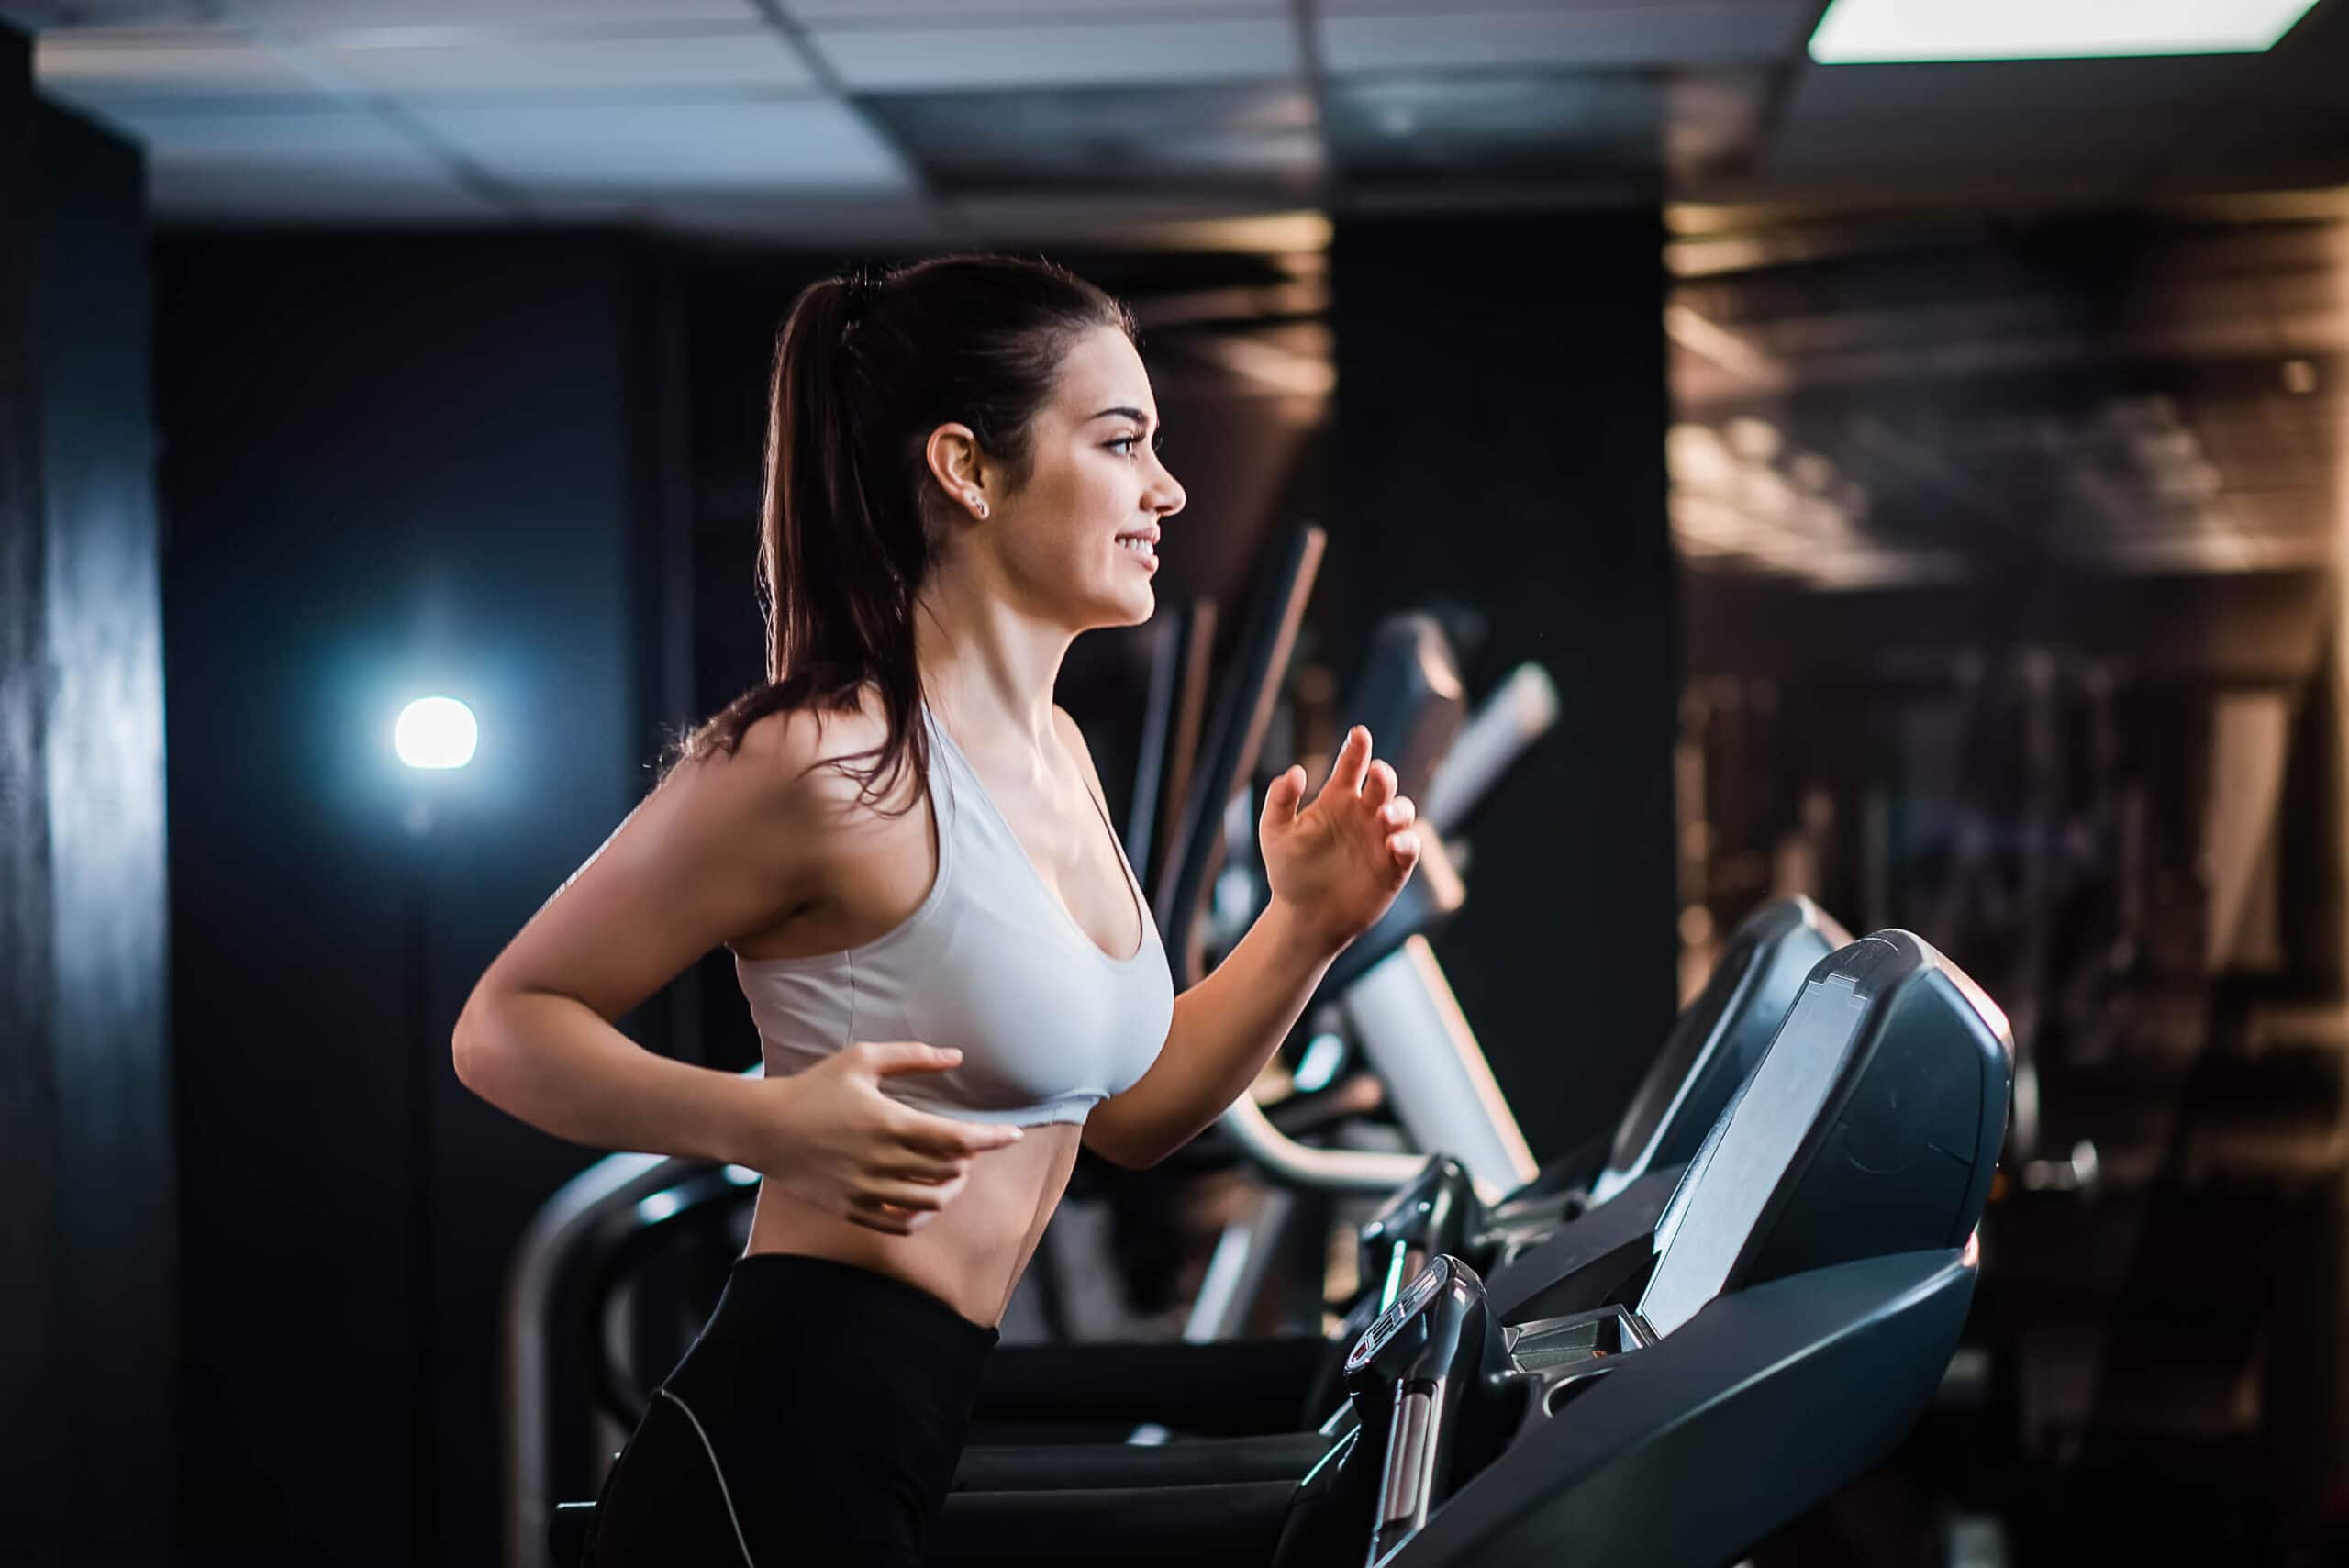 young-sports-woman-with-ponytail-working-out-gym-running-treadmill-side-view (1)